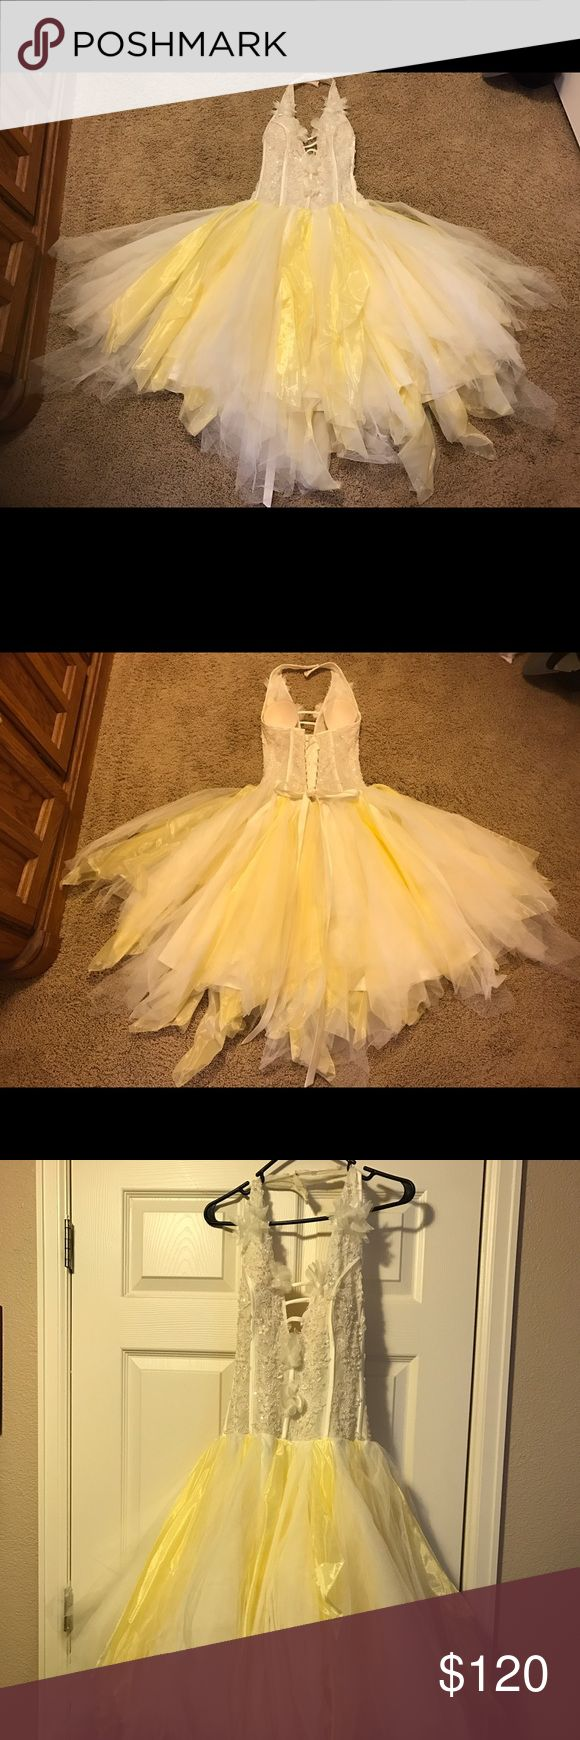 Beaded tule prom dress Handmade beaded tule formal dress. Tule skirt with various yellow and creme pieces in varying lengths. Beaded halter top with tule flowers. Worn once. Corset backing with bra inserts. Bra inserts need to be sewn back in. Hits mid calf fluffy skirt with tighter fit top. Likely fits size 0-2. Any questions or additional pics please ask! Very good condition needs to breathe and be fluffed but should hang very nice once on. Dresses Prom